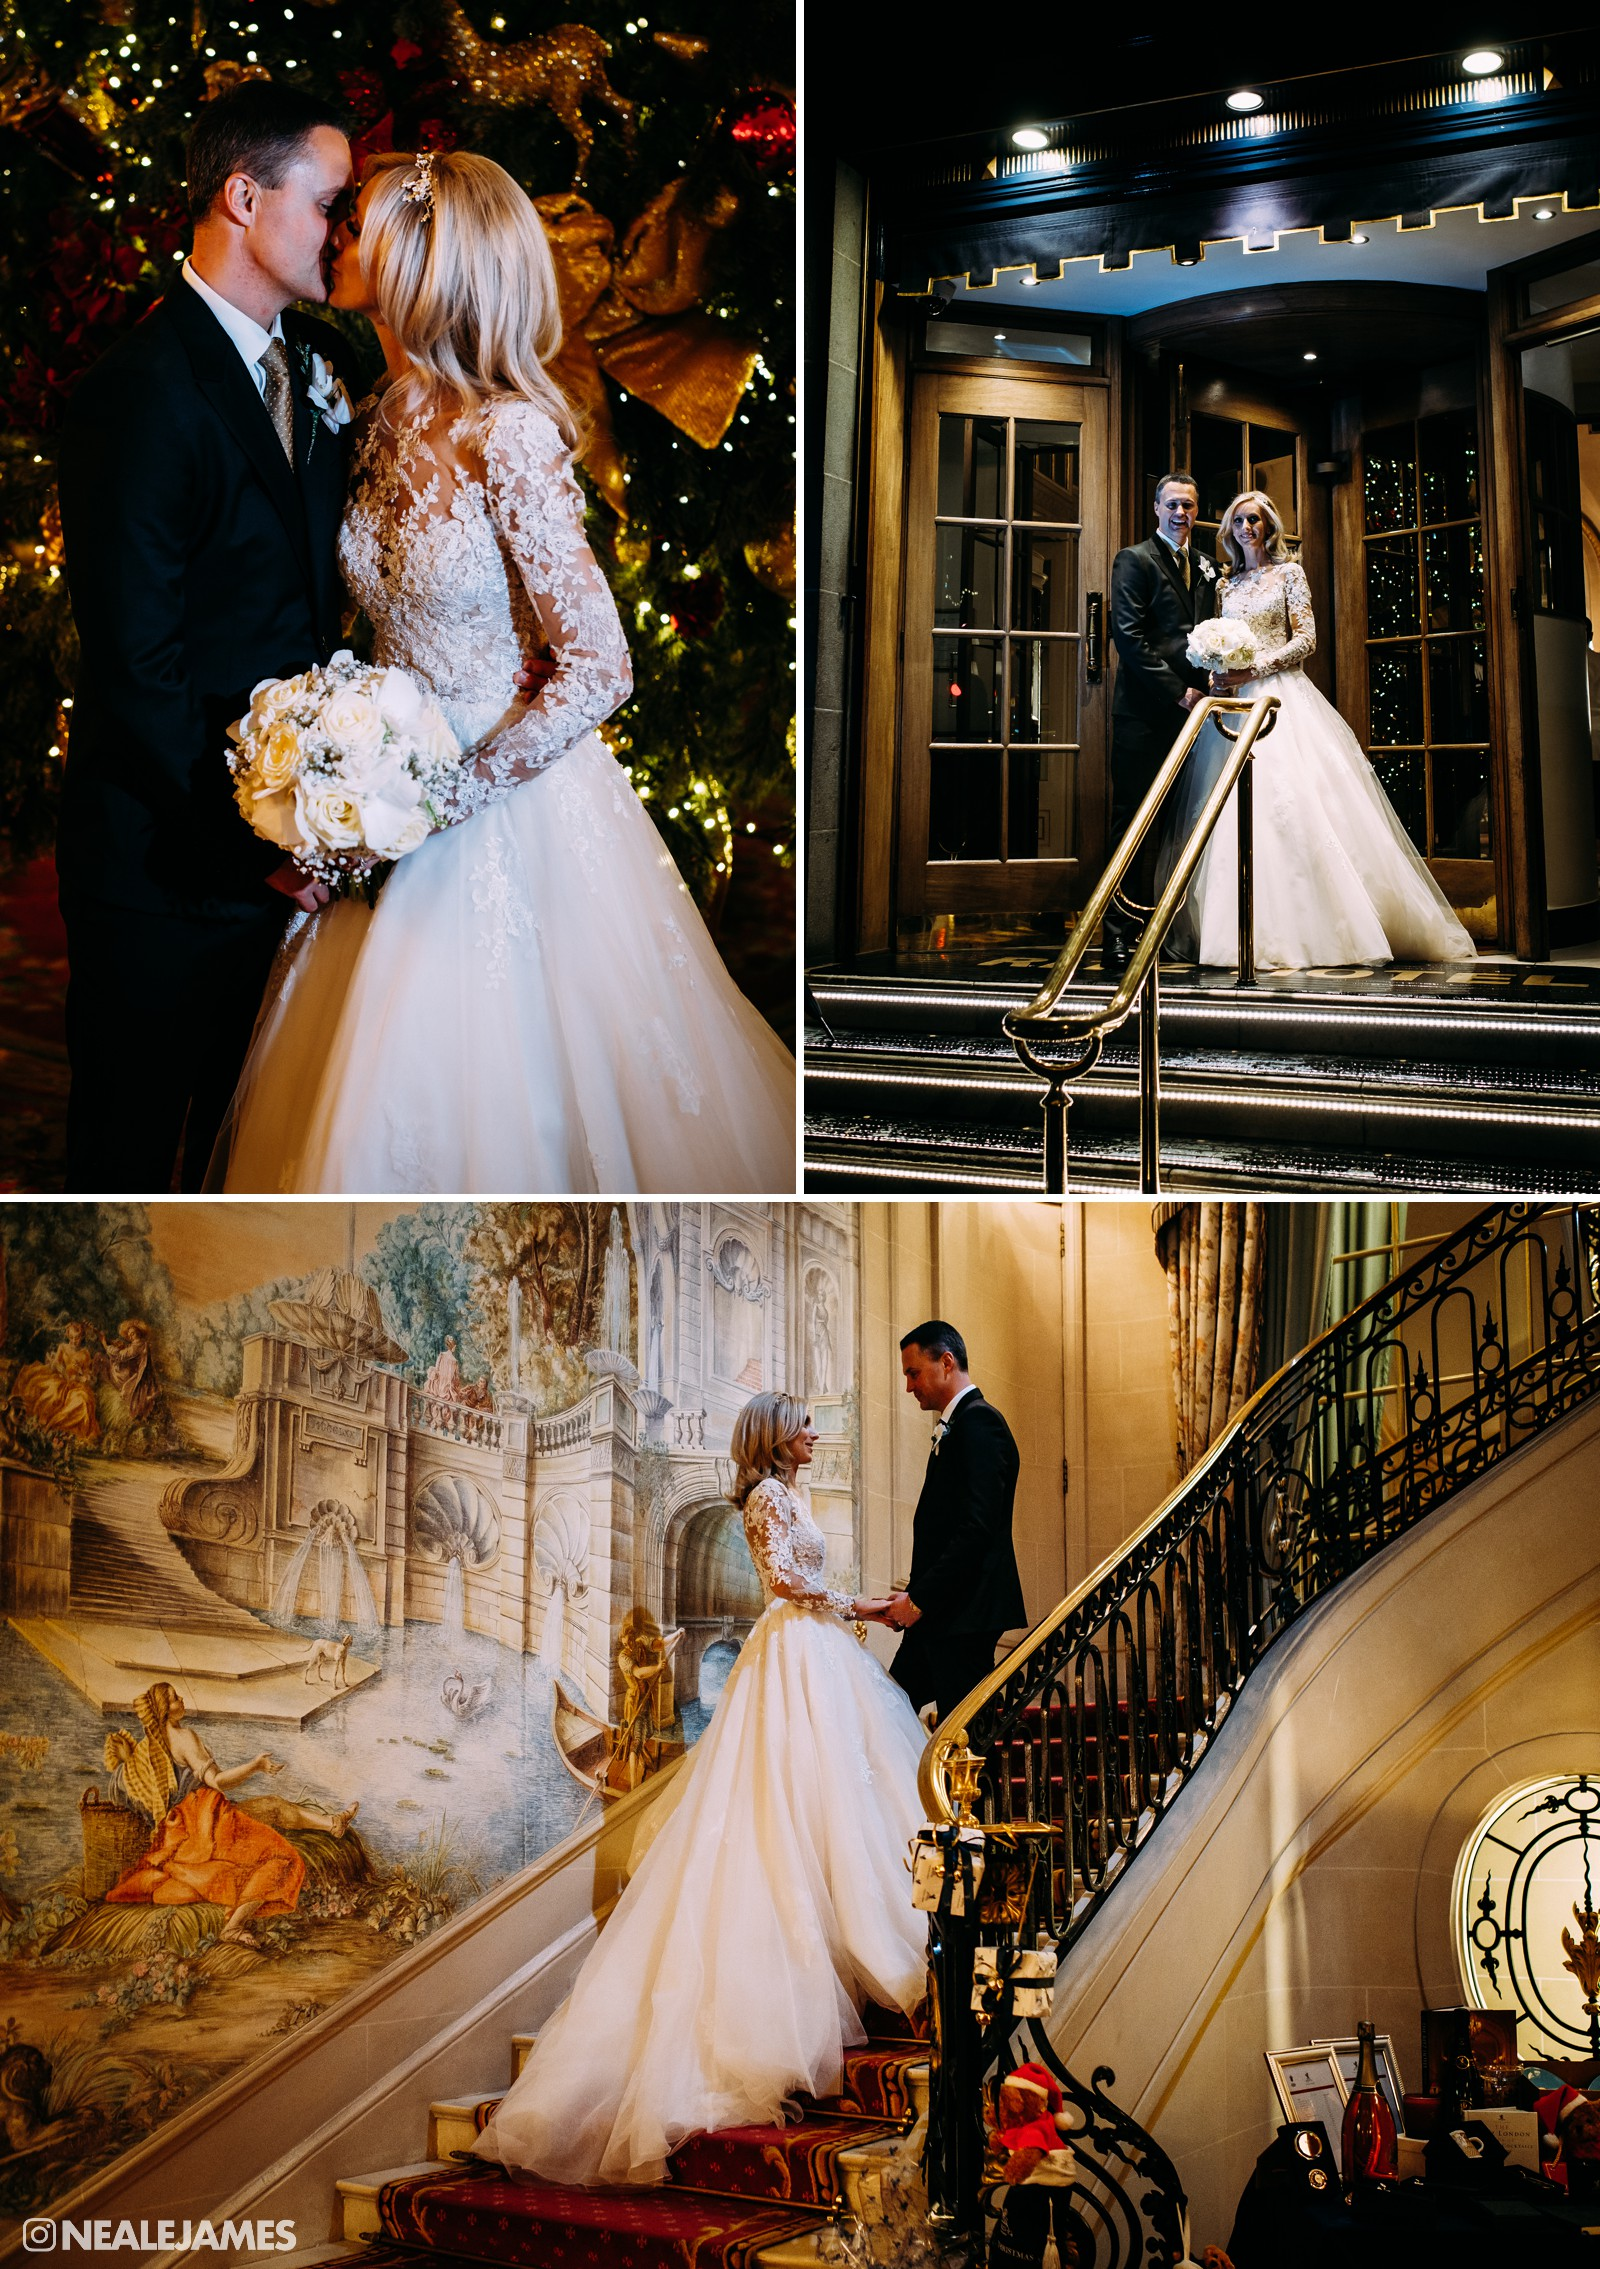 A colour portrait set made at The Ritz wedding venue in London featuring Ricki Hill and Charlotte